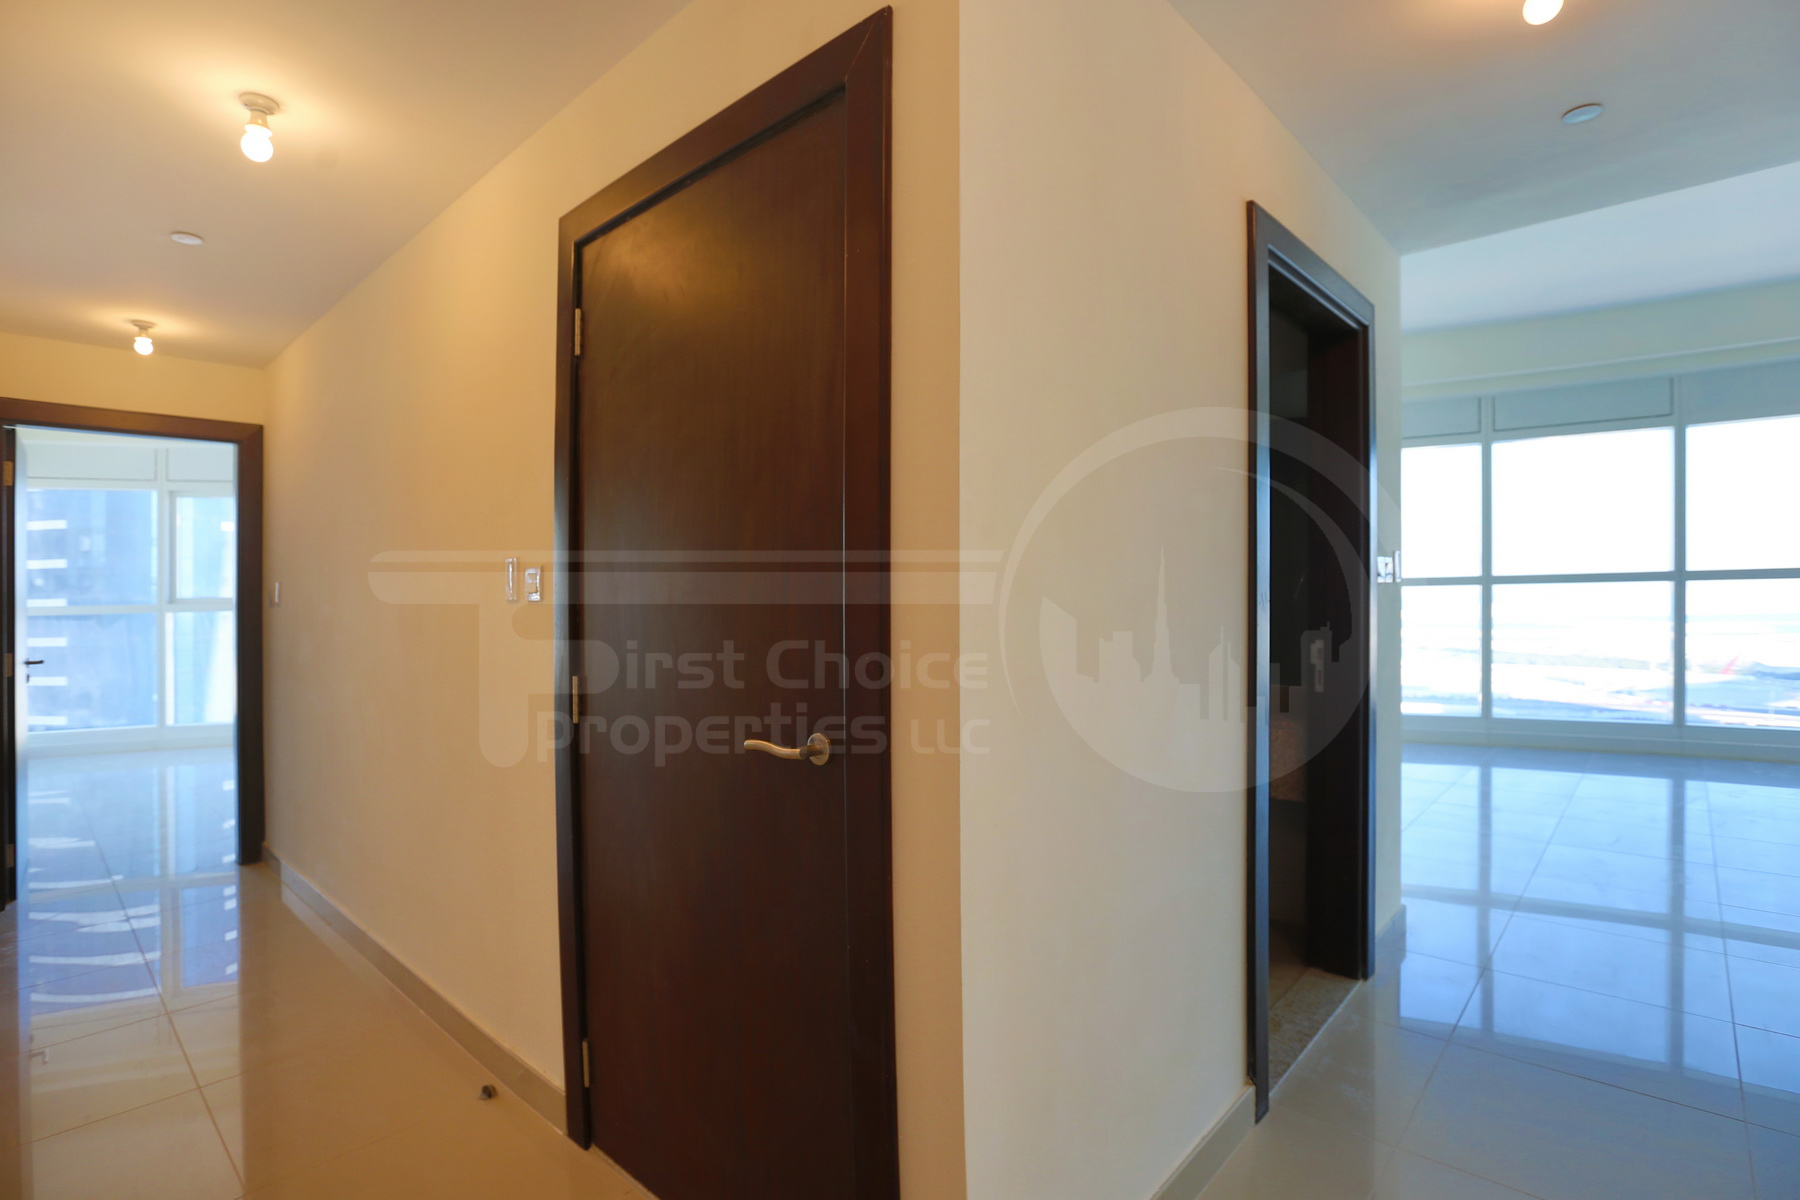 2BR Apartment - Abu Dhabi - UAE - Al Reem Island - City of Lights - C10 Building (2).JPG